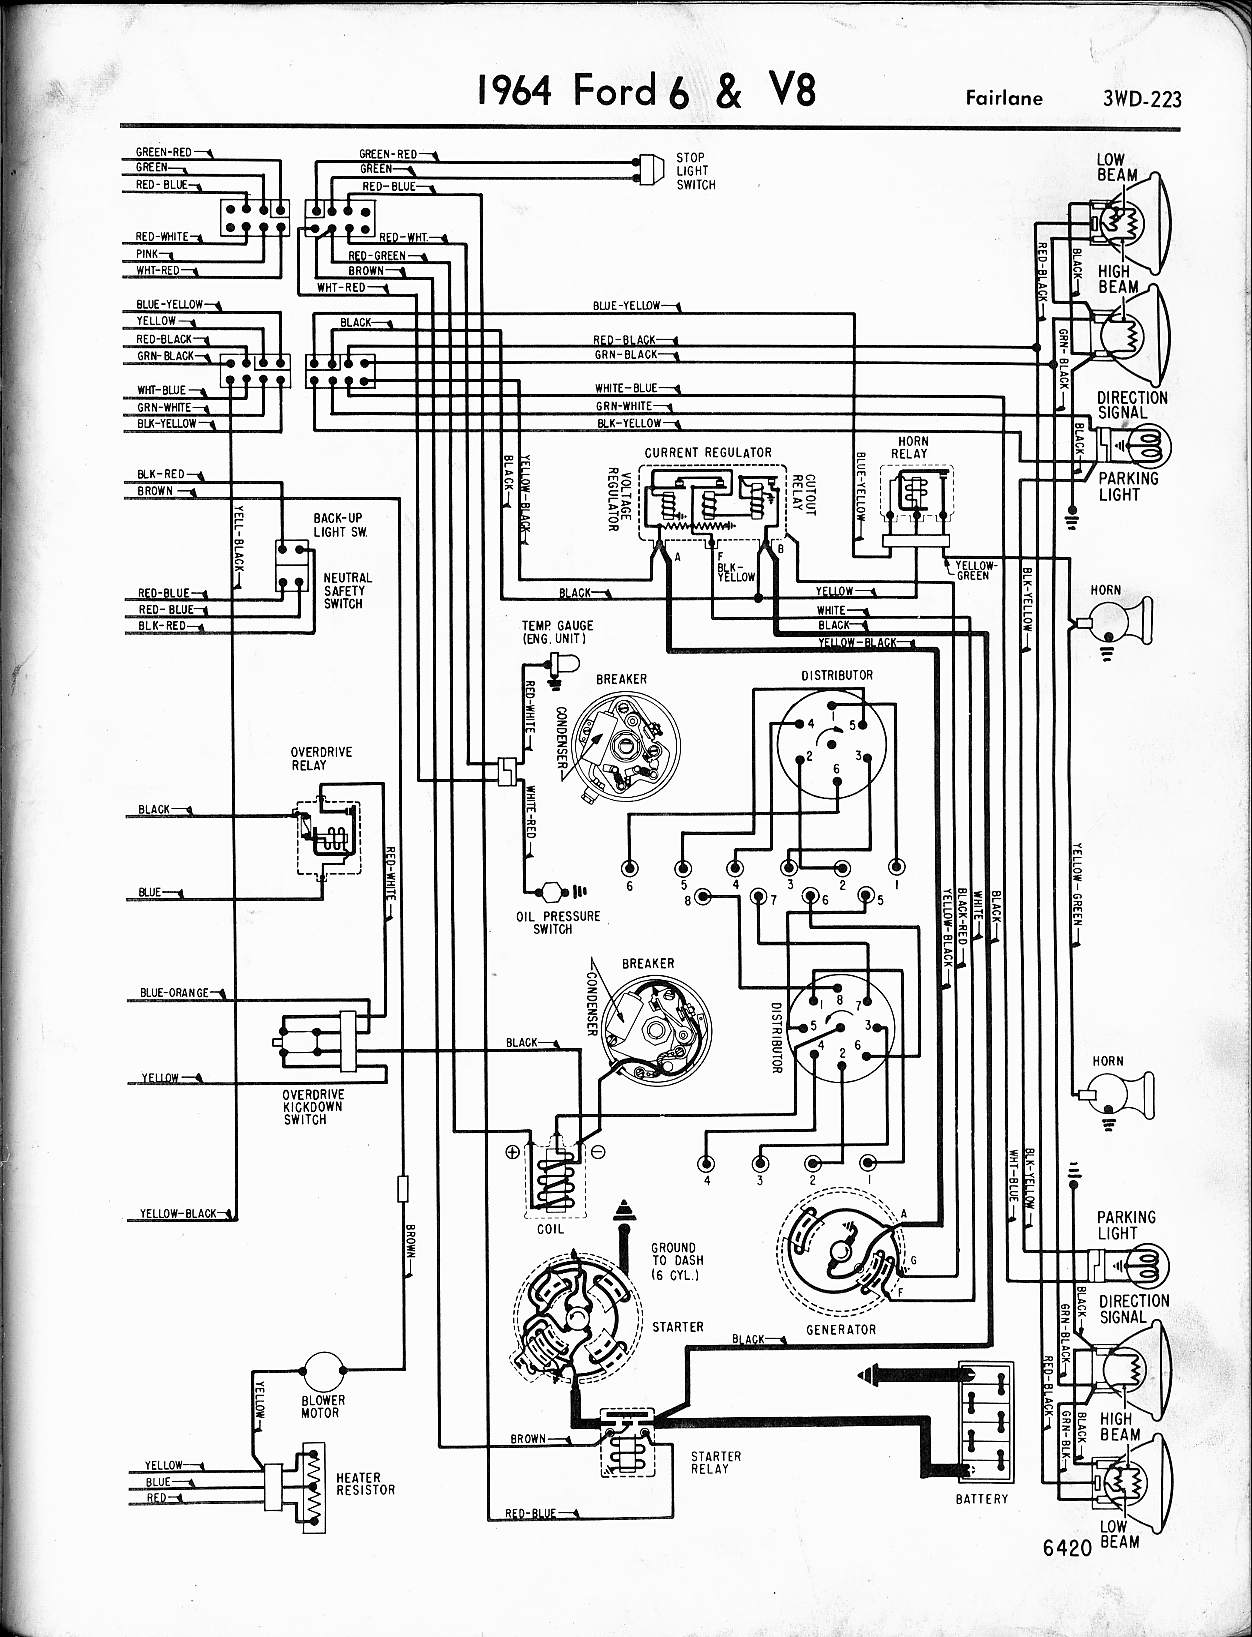 MWire5765 223 1964 1966 thunderbirfd wiring schematic 66 mustang wiring diagram 1966 ford truck wiring diagram at aneh.co